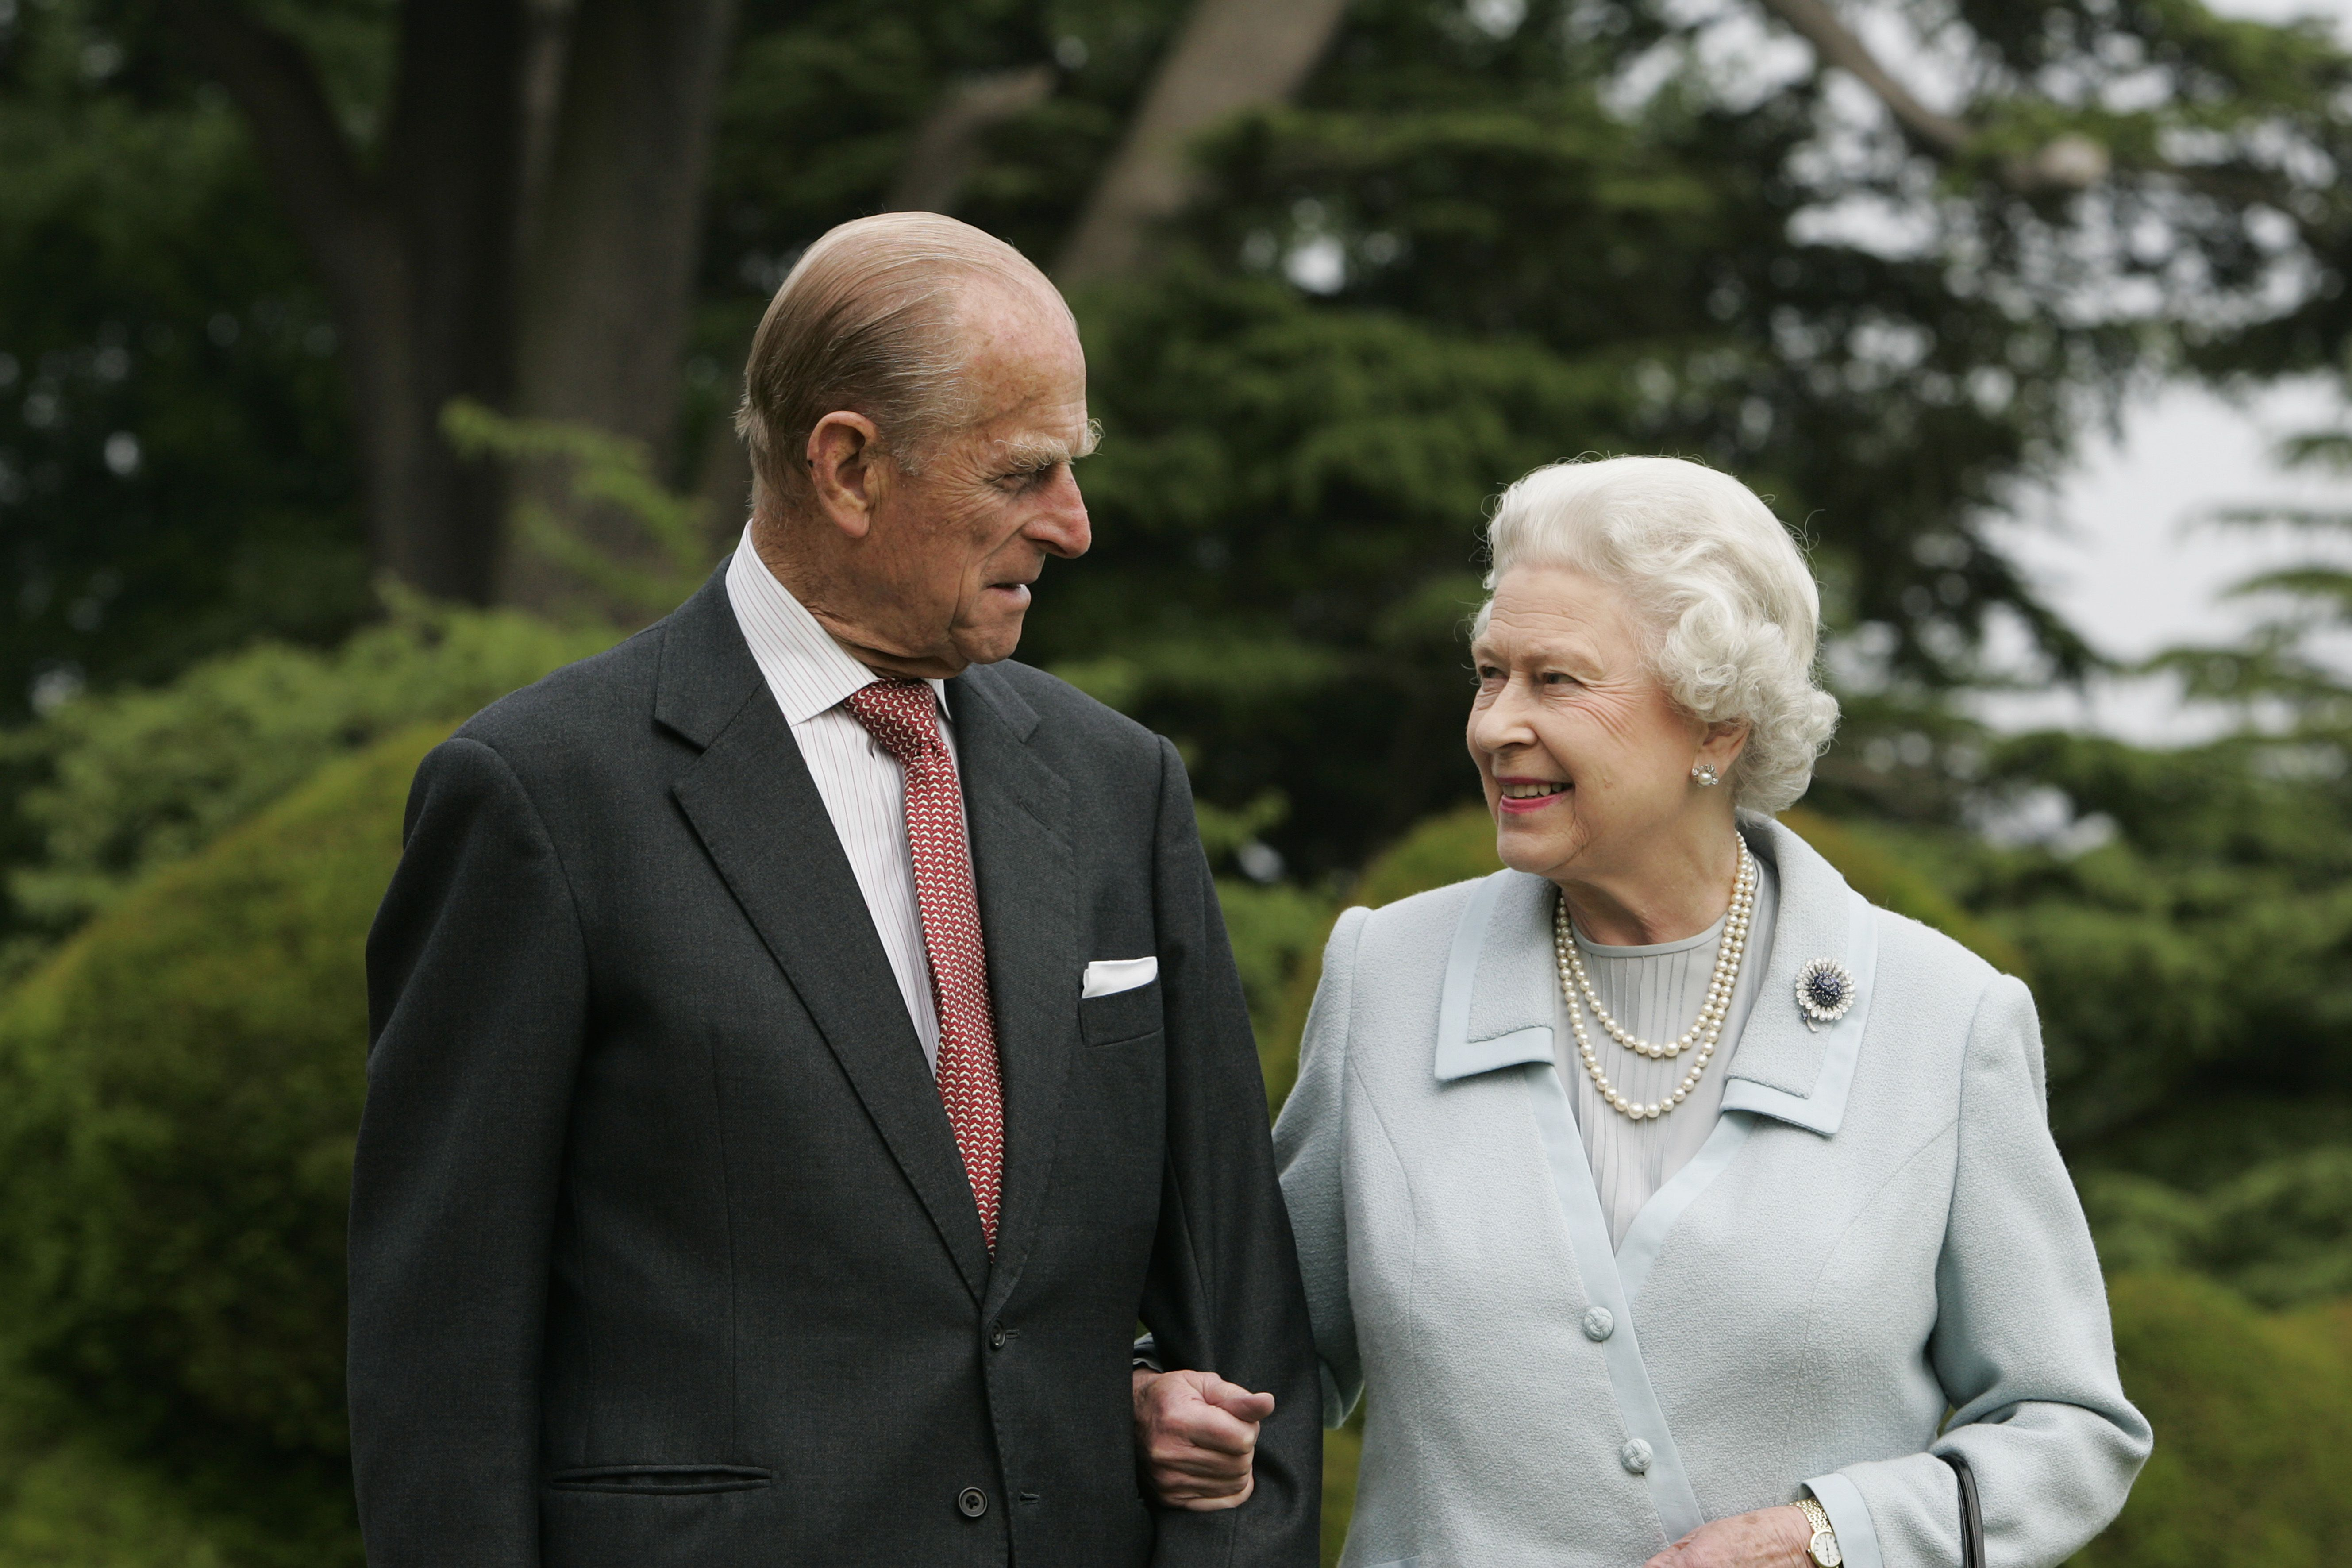 The Queen has honoured Prince Philip's closest aides in the most thoughtful way